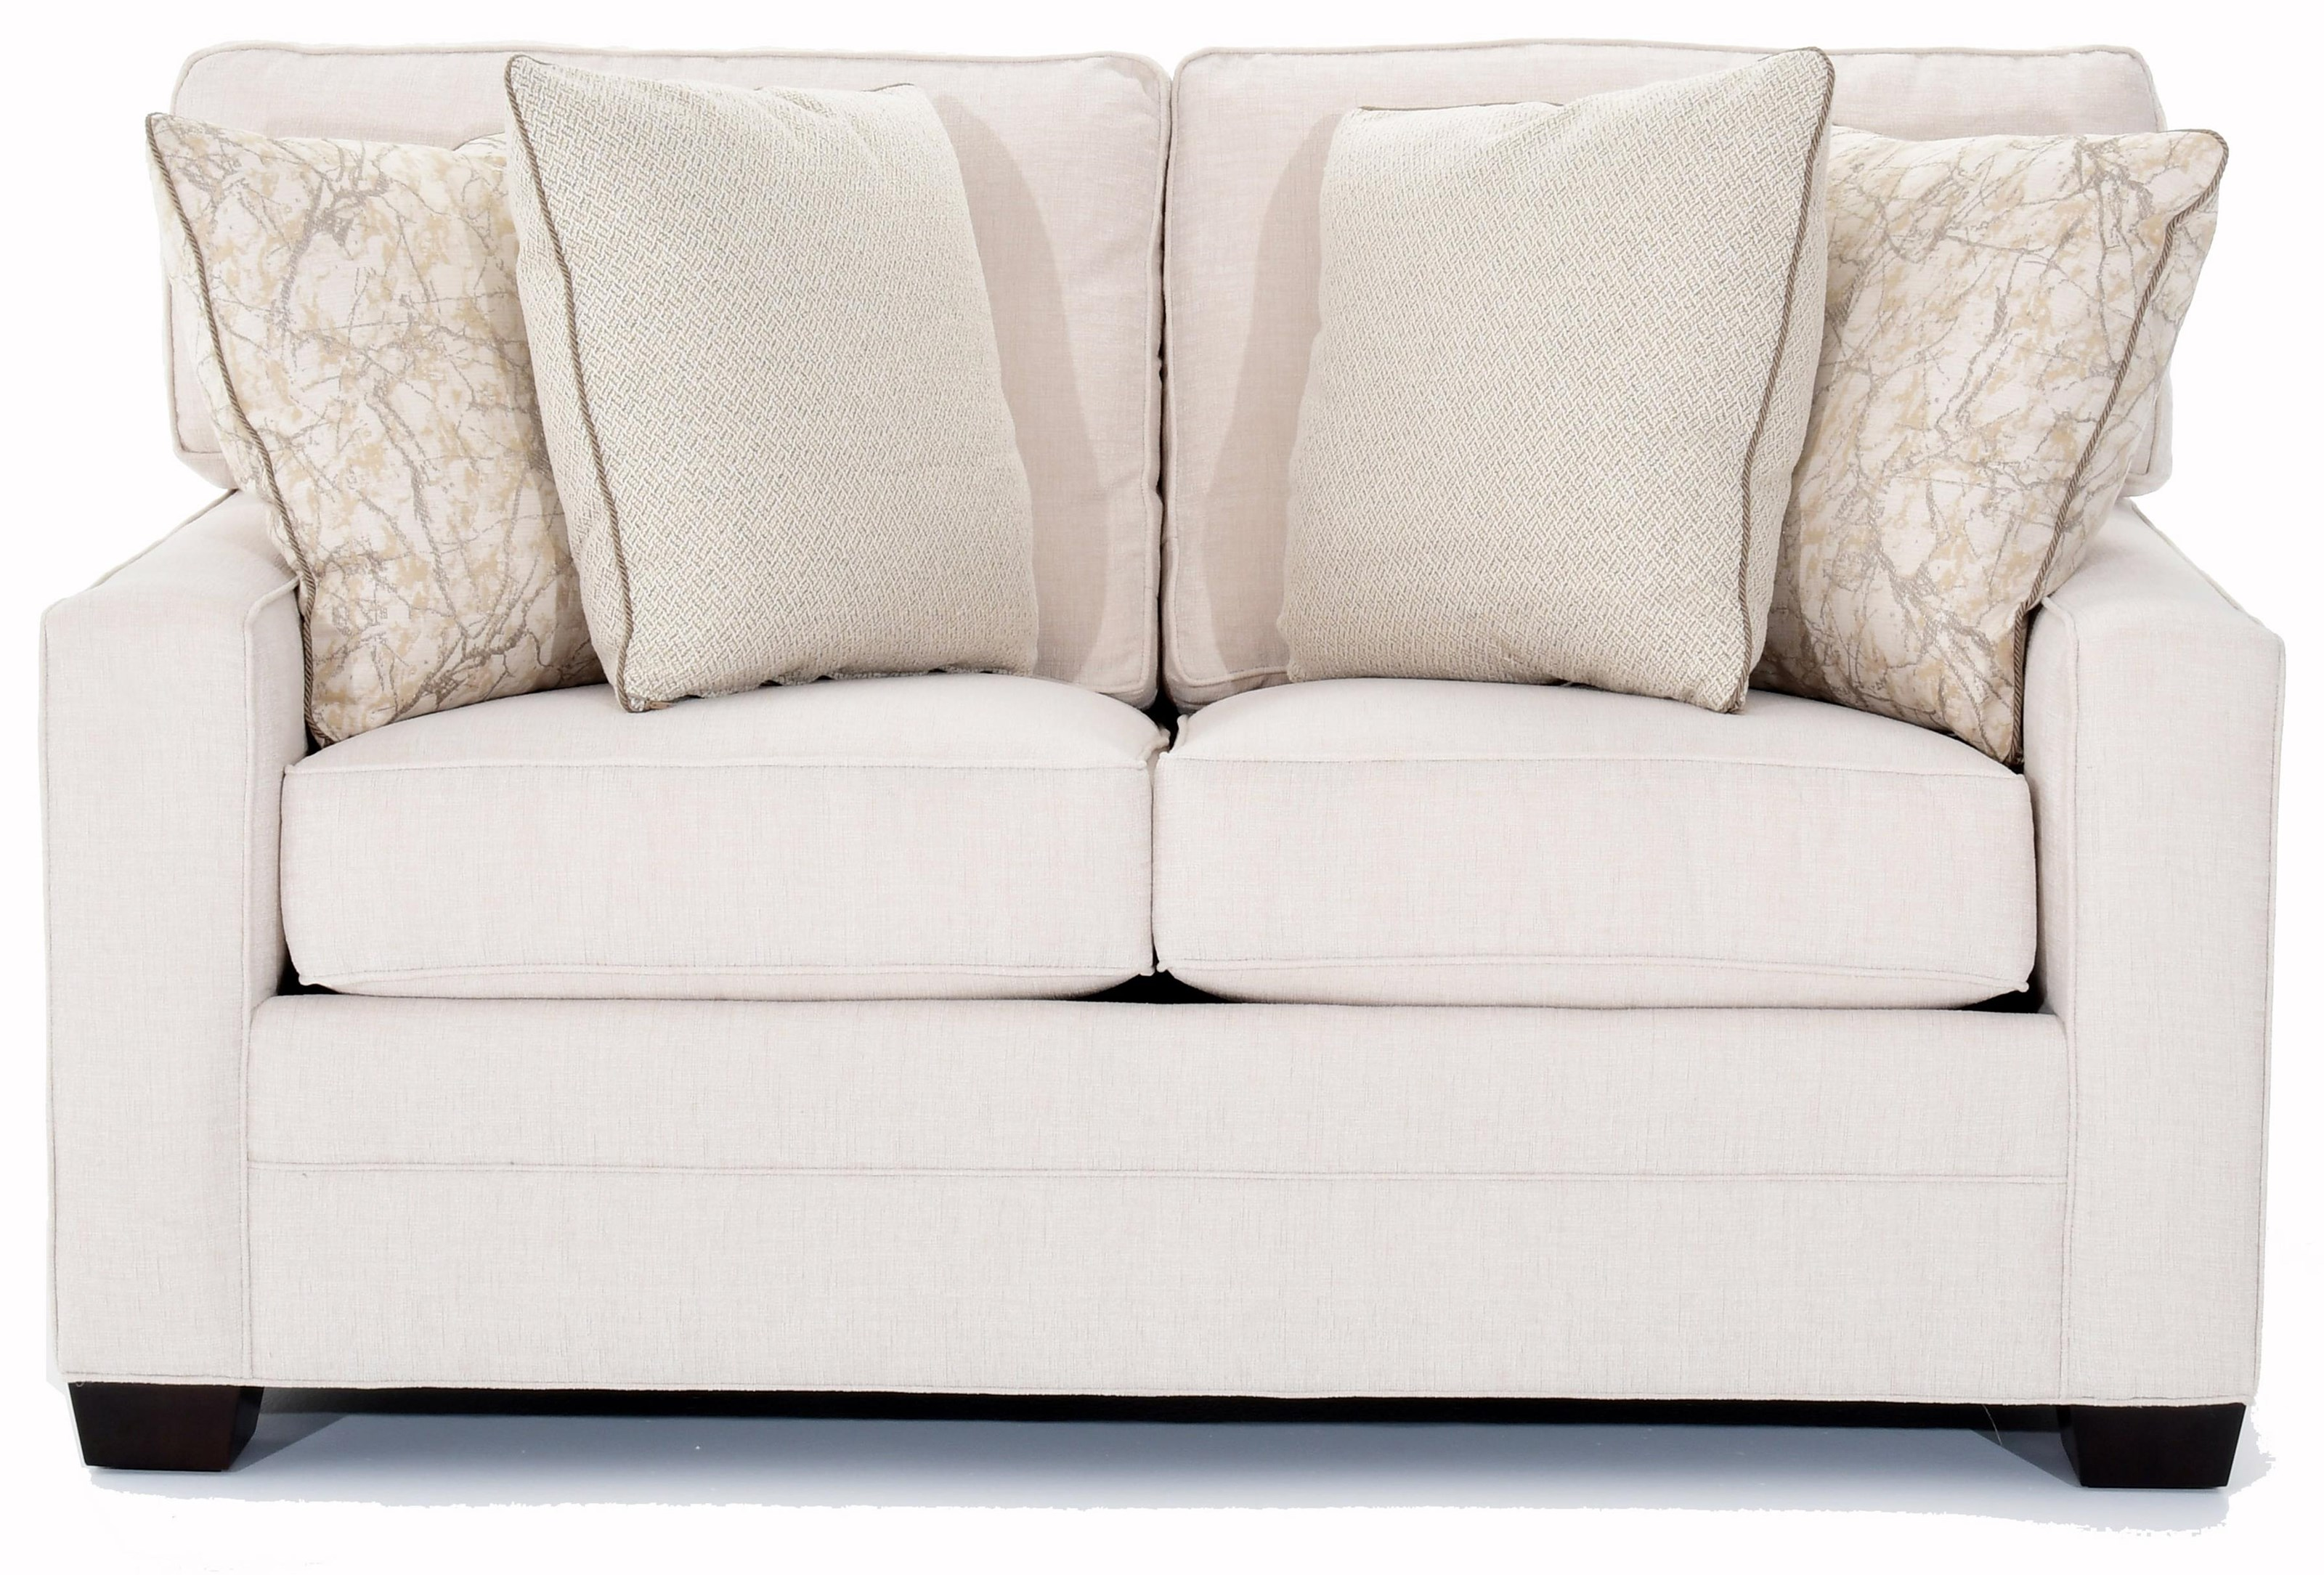 2062 Loveseat by Huntington House at Baer's Furniture